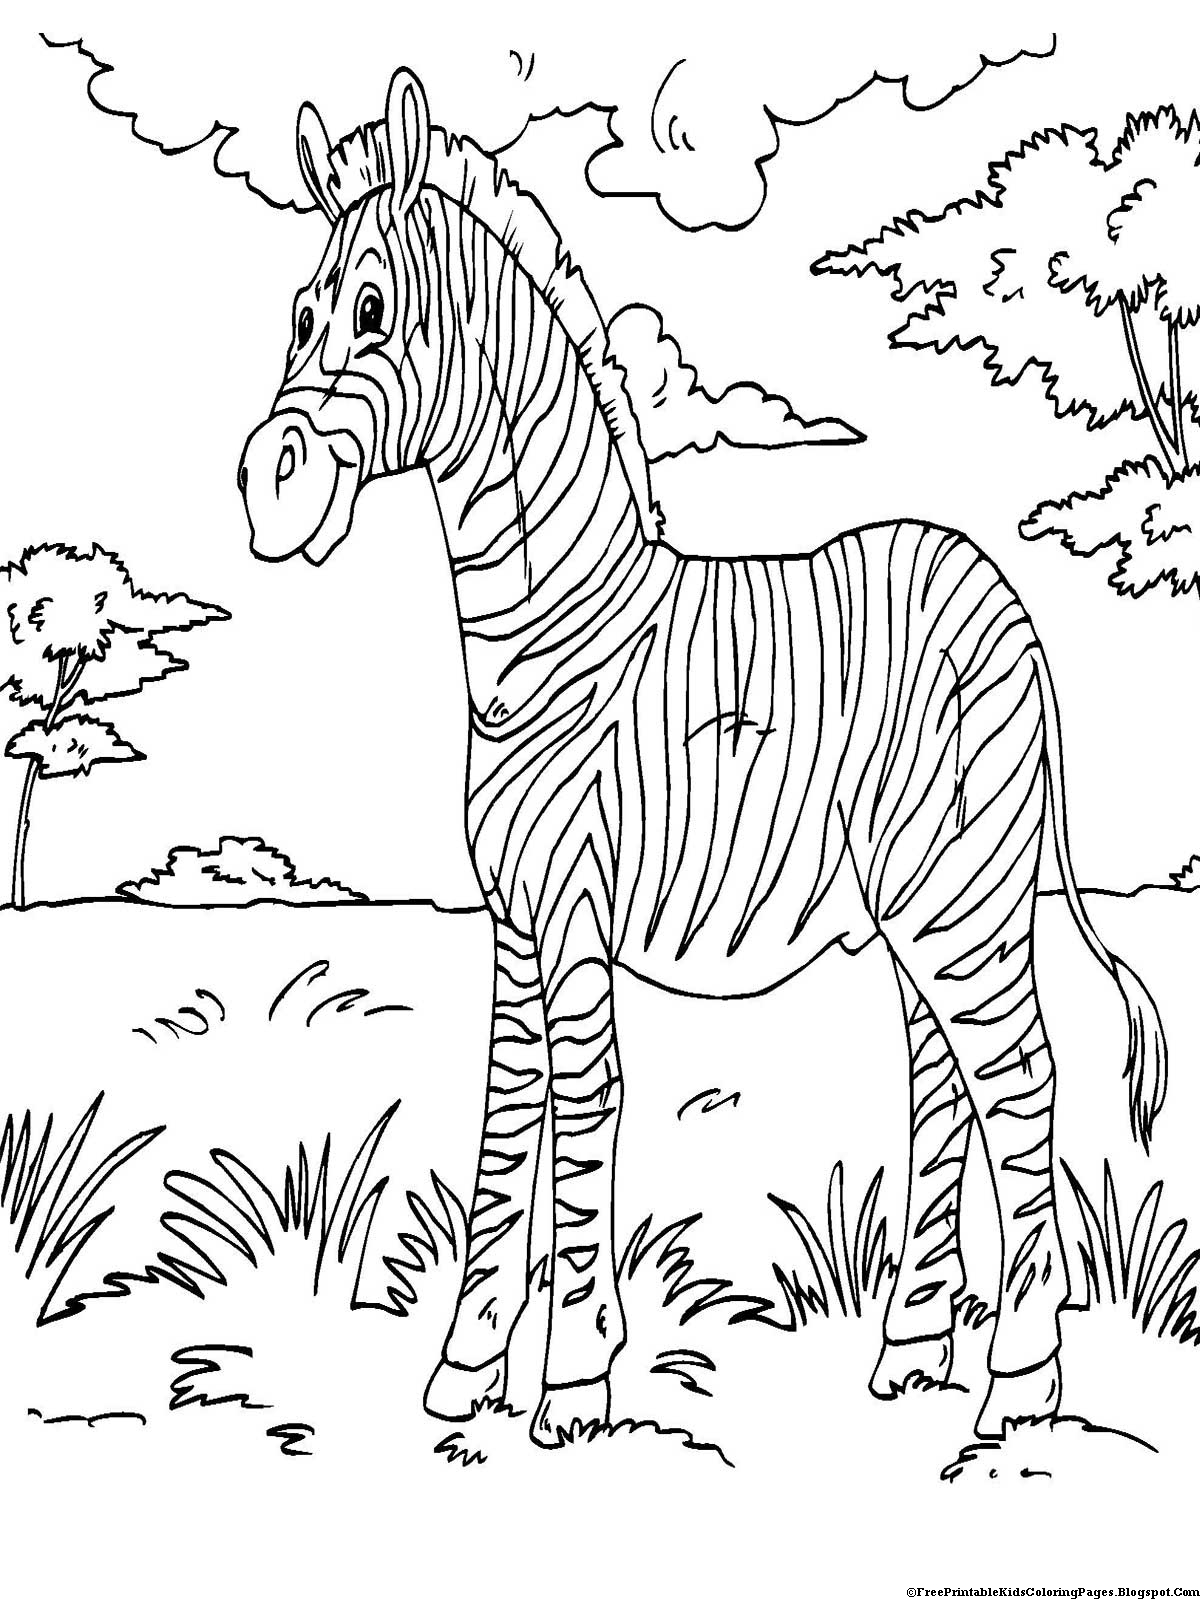 free coloring worksheets zebra coloring pages free printable kids coloring pages free coloring worksheets